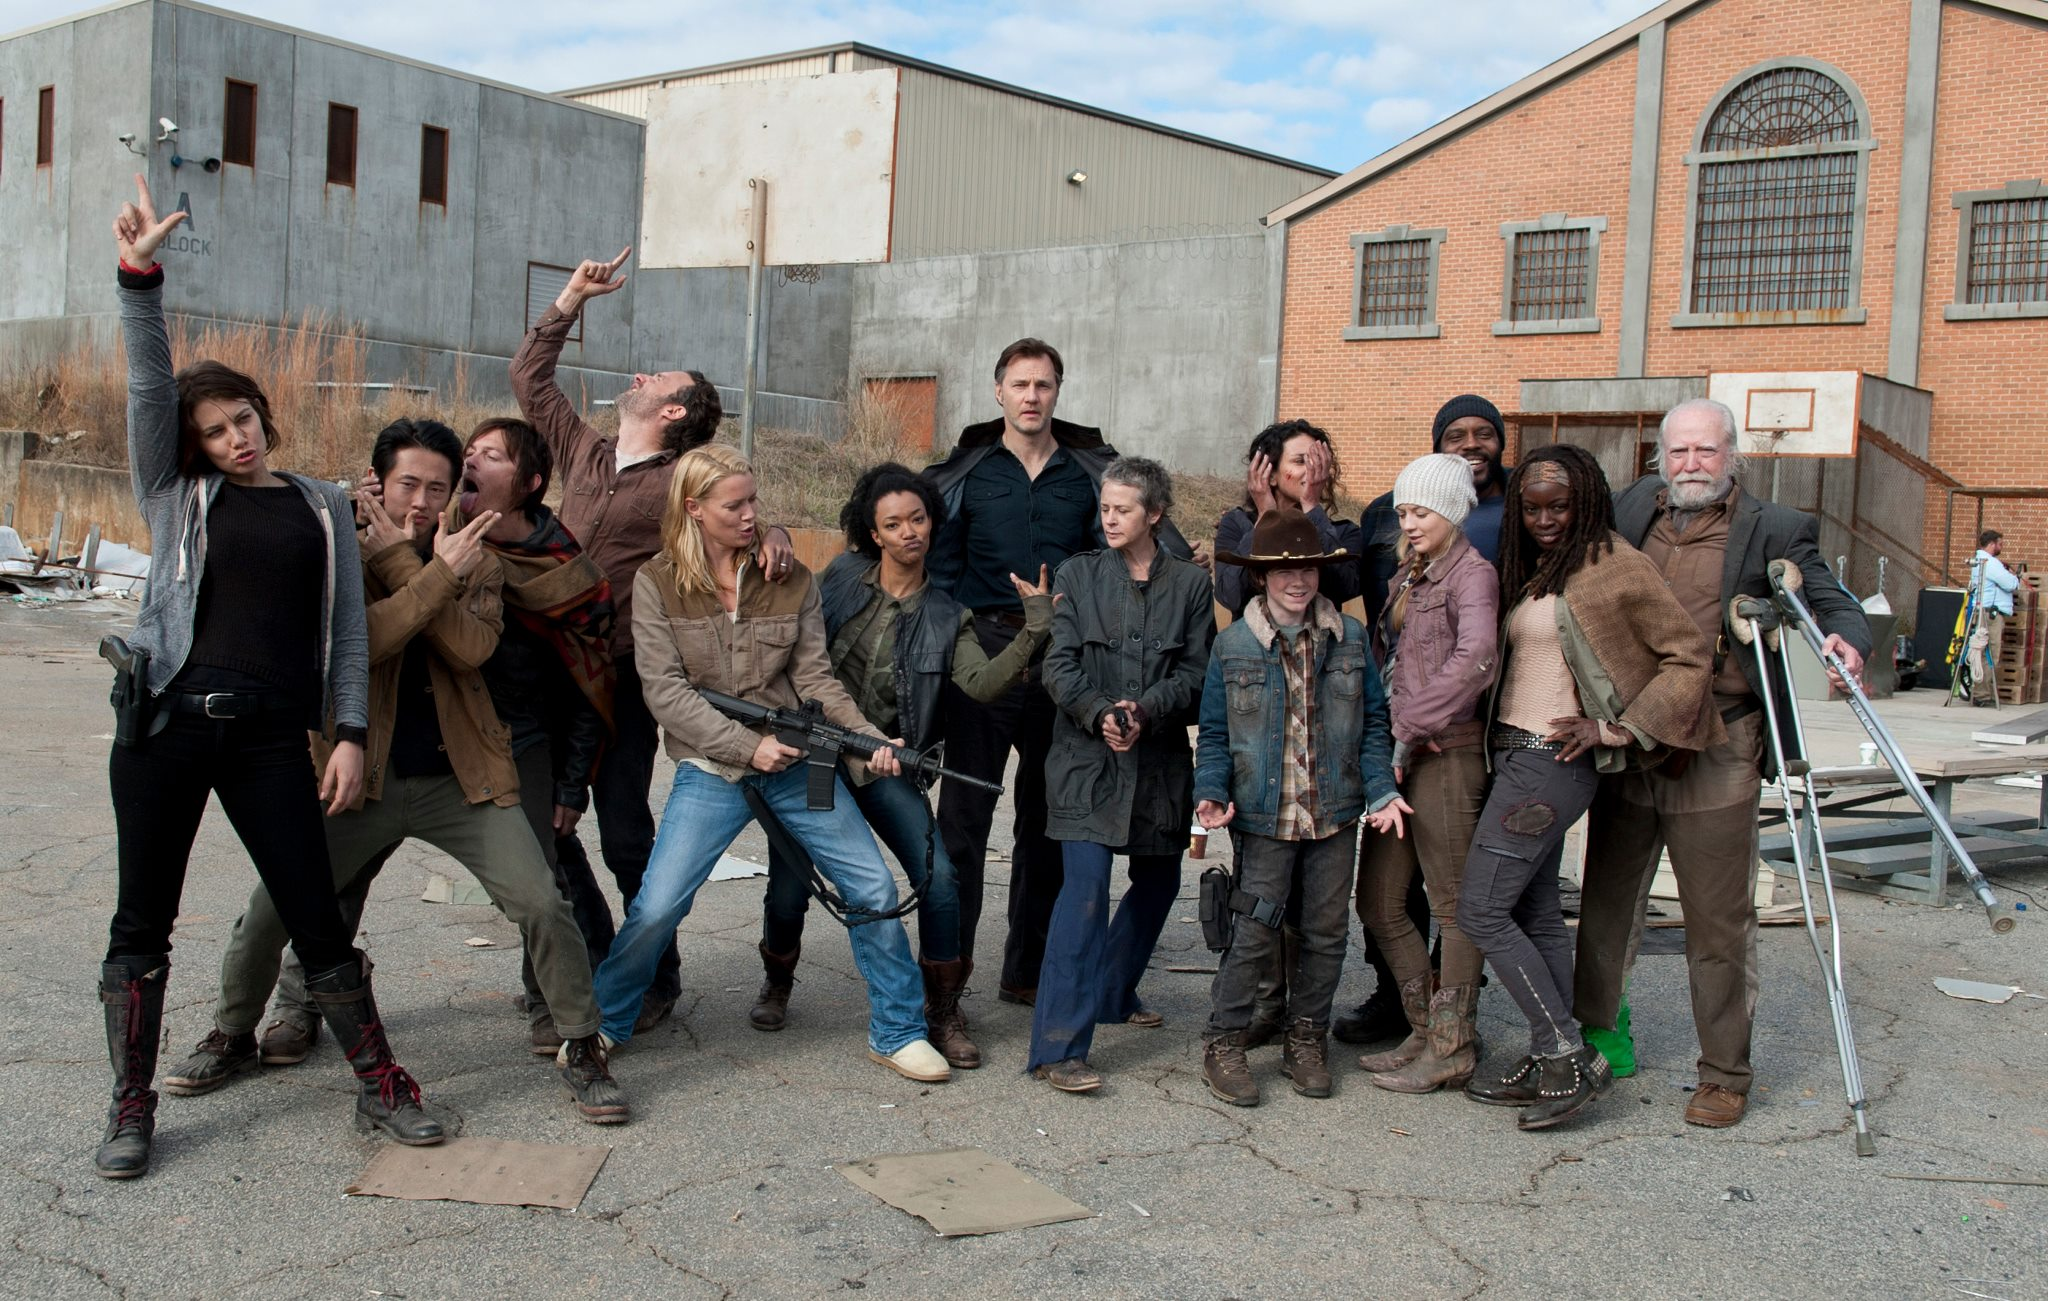 the-walking-dead-season-3-episode-16-02-cast-photo | et geekera